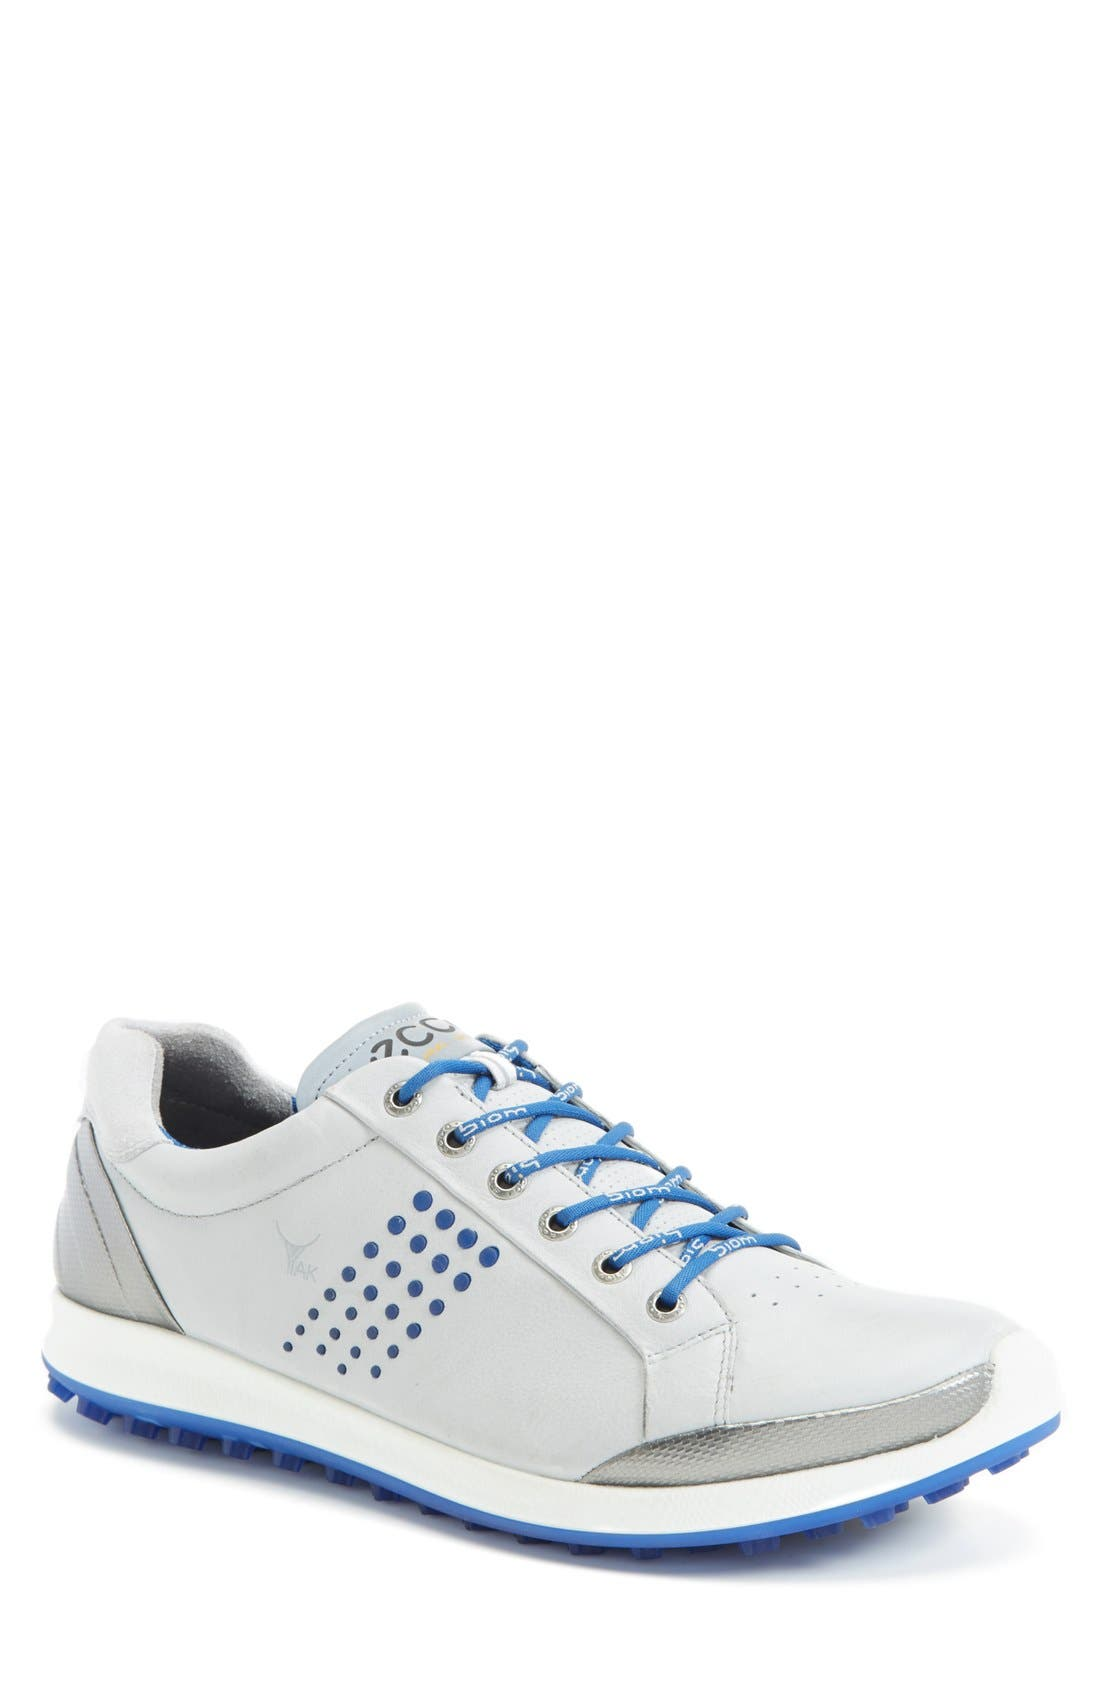 BIOM Hybrid 2 Golf Shoe,                             Main thumbnail 1, color,                             CONCRETE/ ROYAL